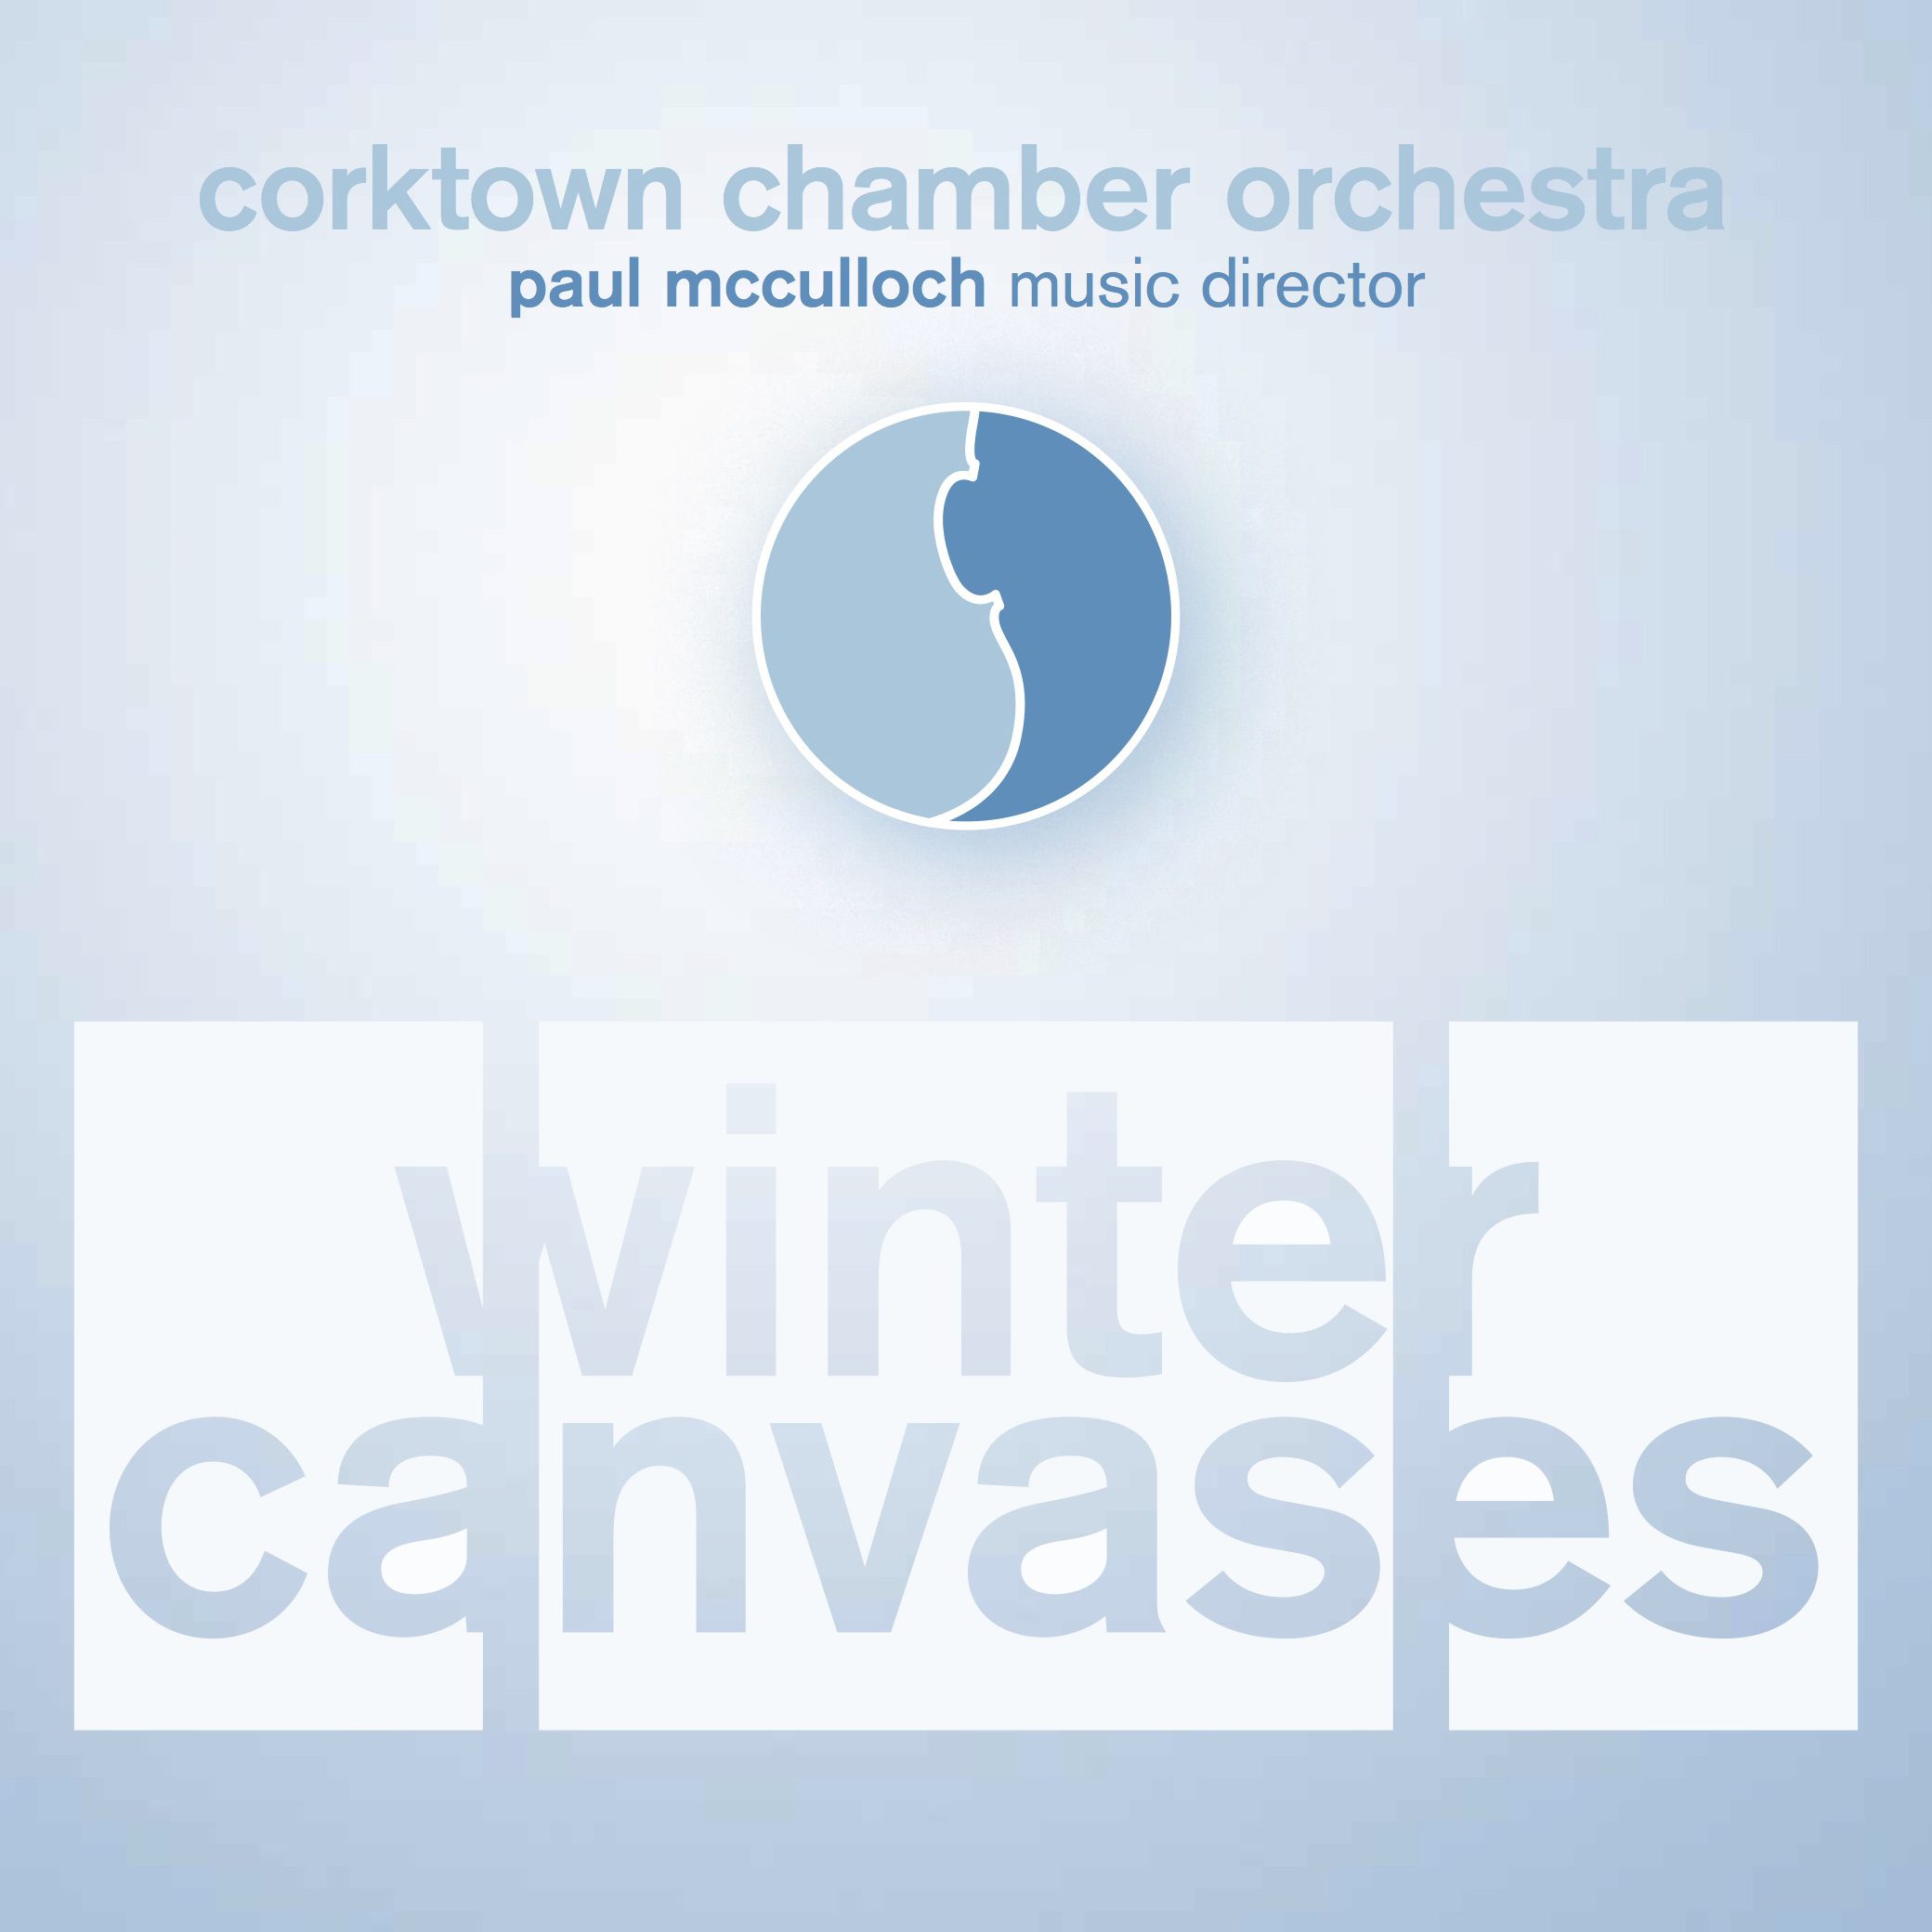 CORKTOWN CHAMBER ORCHESTRA - Select musicians  Corktown Chamber Orchestra is a downtown Toronto collective of talented, non-professional musicians who gather weekly as an orchestra to foster a mutual appreciation for music and community.